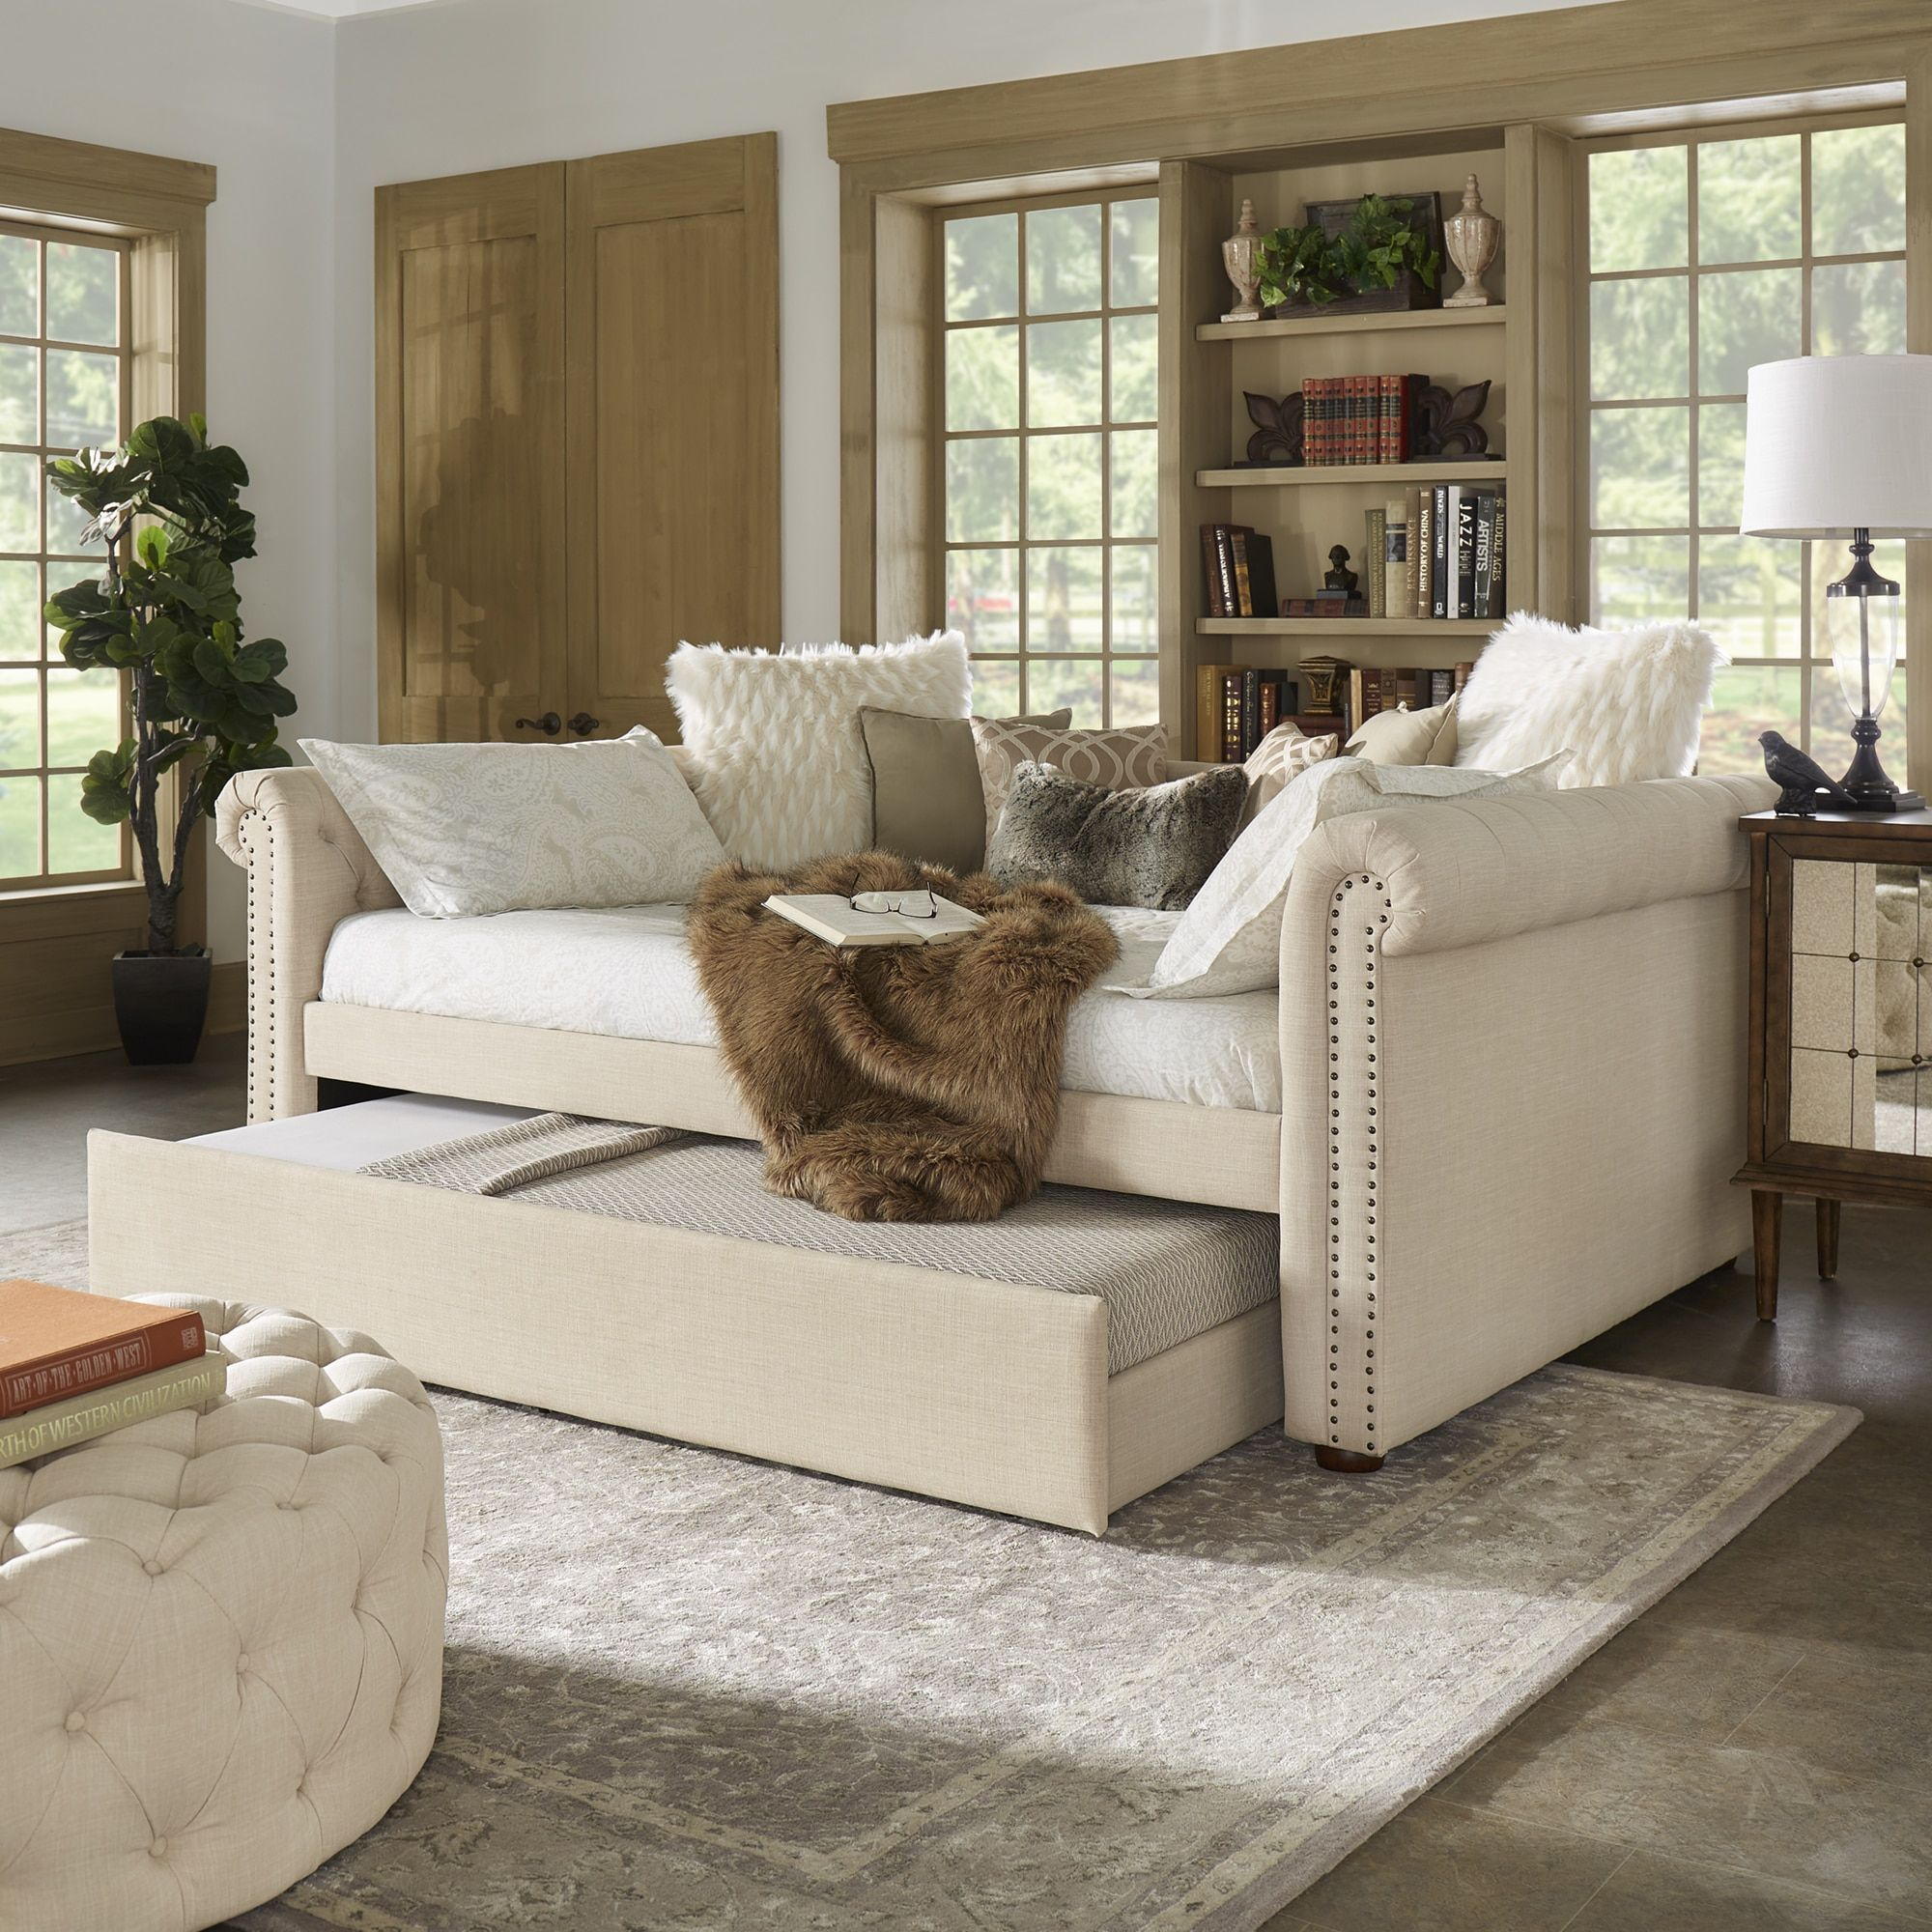 Knightsbridge Full Size Tufted Scroll Arm Chesterfield Daybed and Trundle  by iNSPIRE Q Artisan (Beige